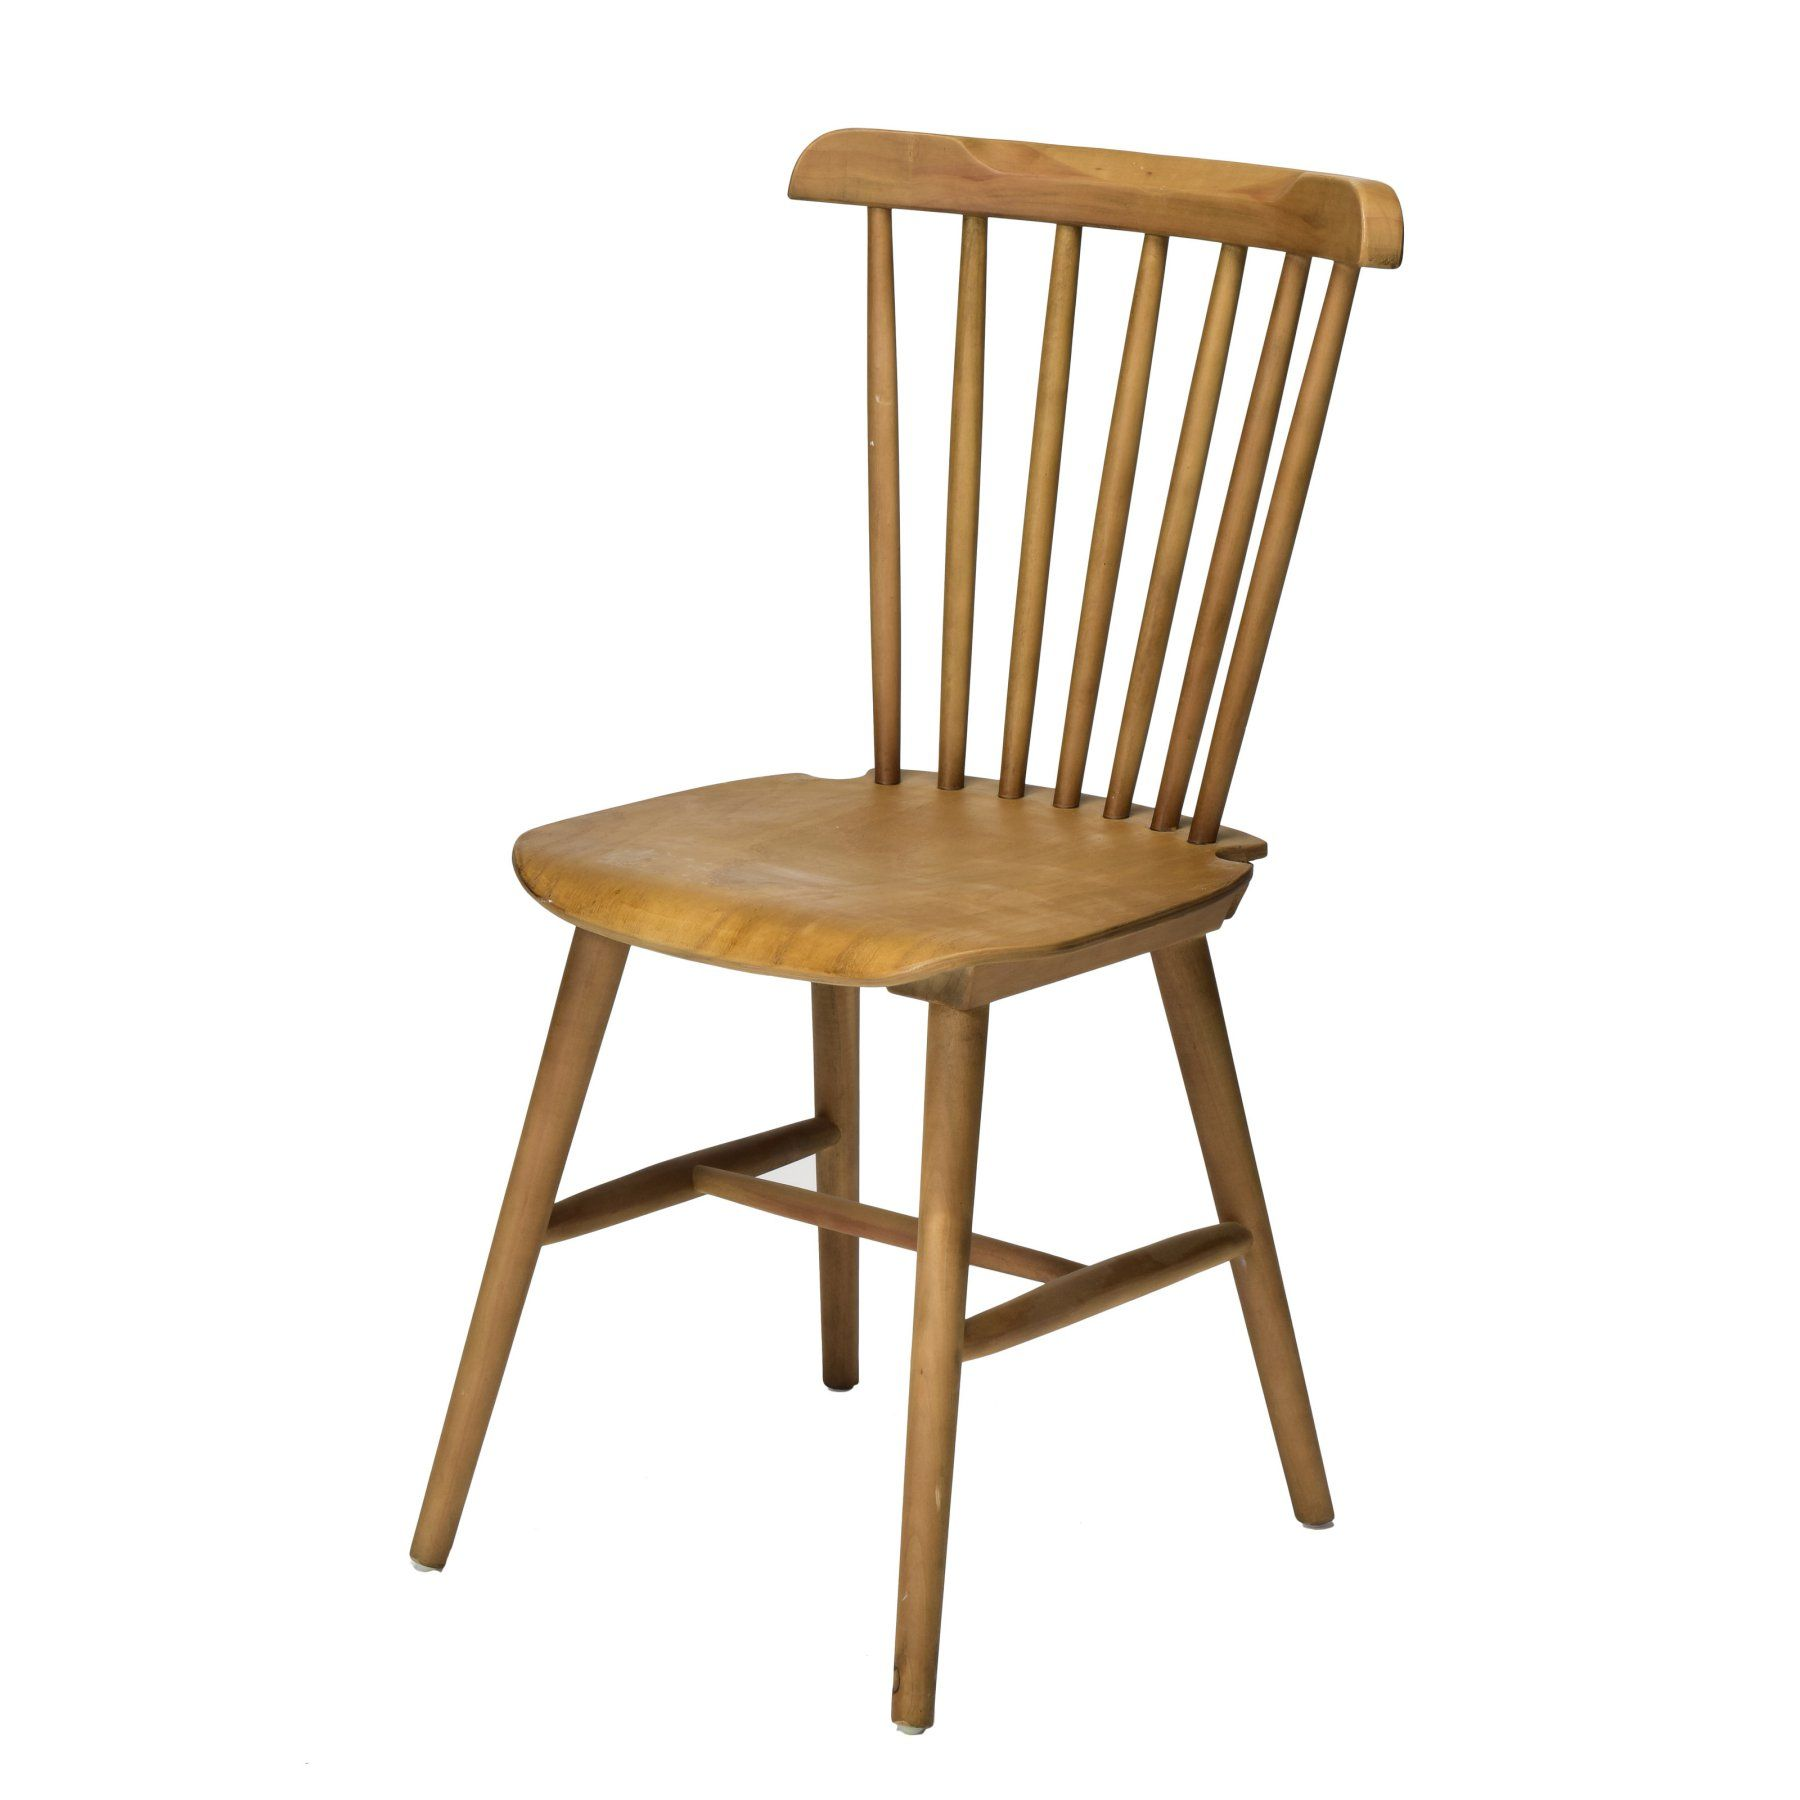 Commercial Seating Products Windsor Stackable Dining Chair Dining Chairs Chair Restaurant Tables Chairs